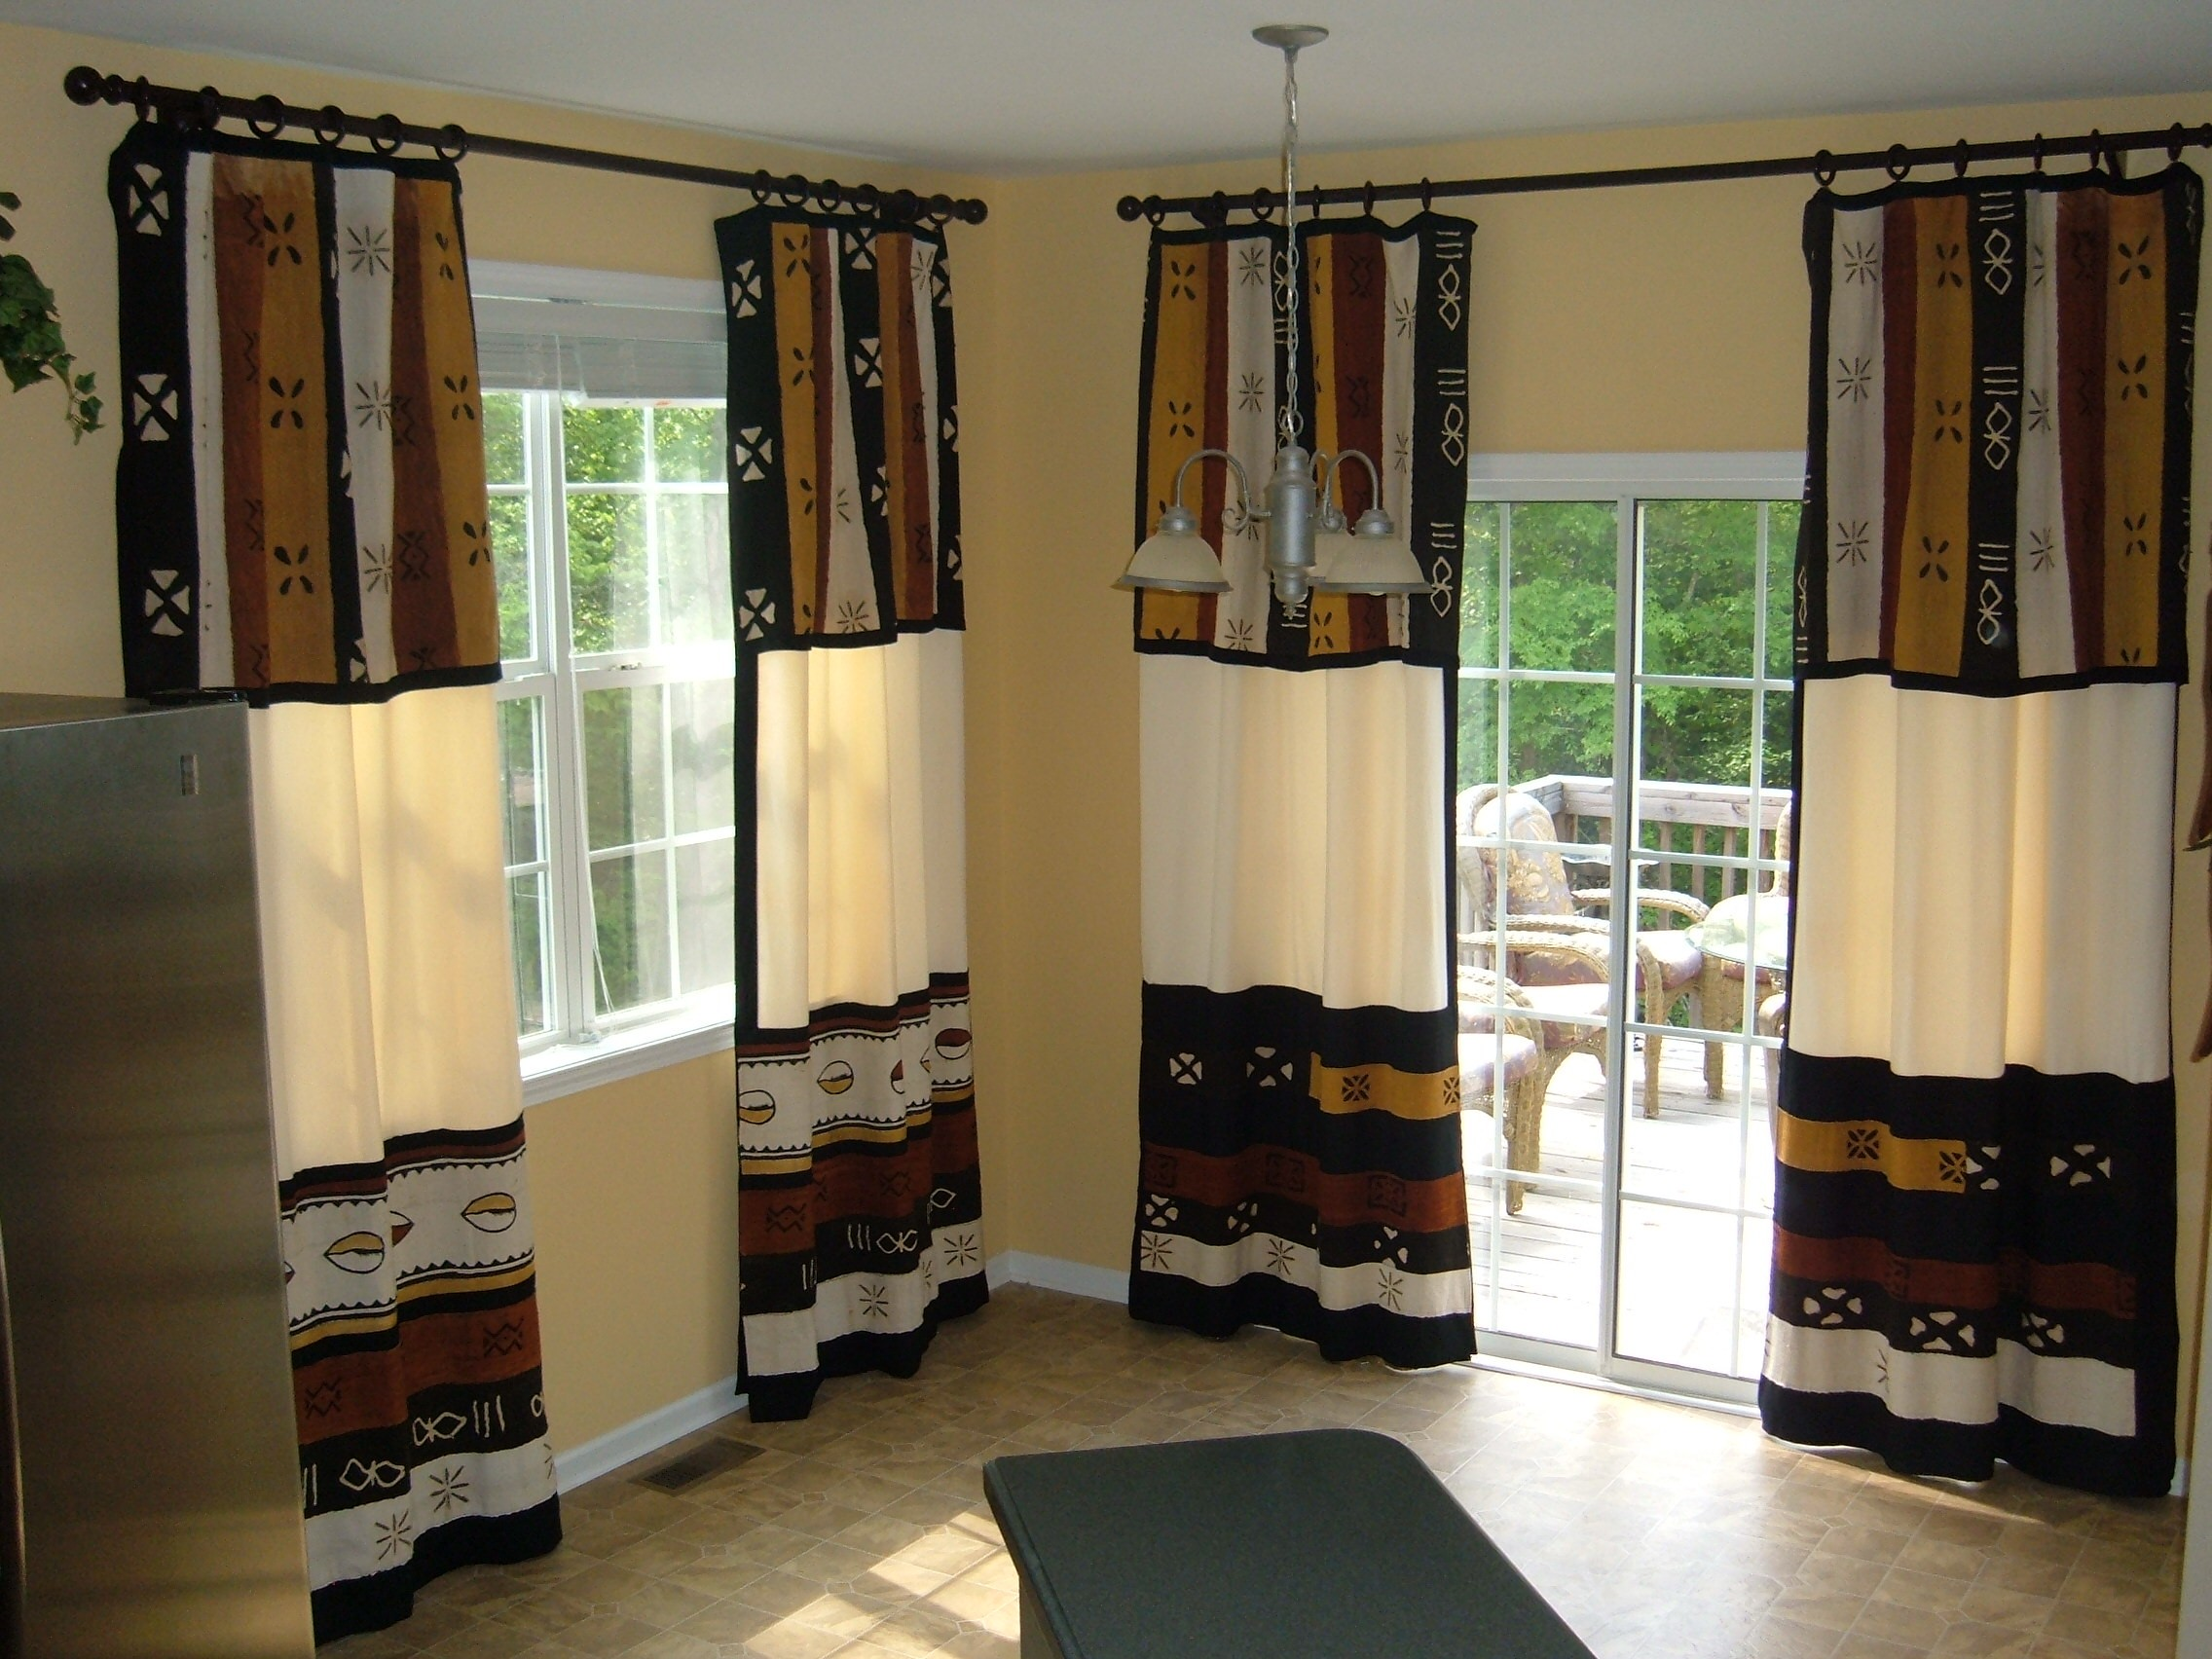 Tips for window covering for sliding glass door homesfeed for Window treatments for door walls